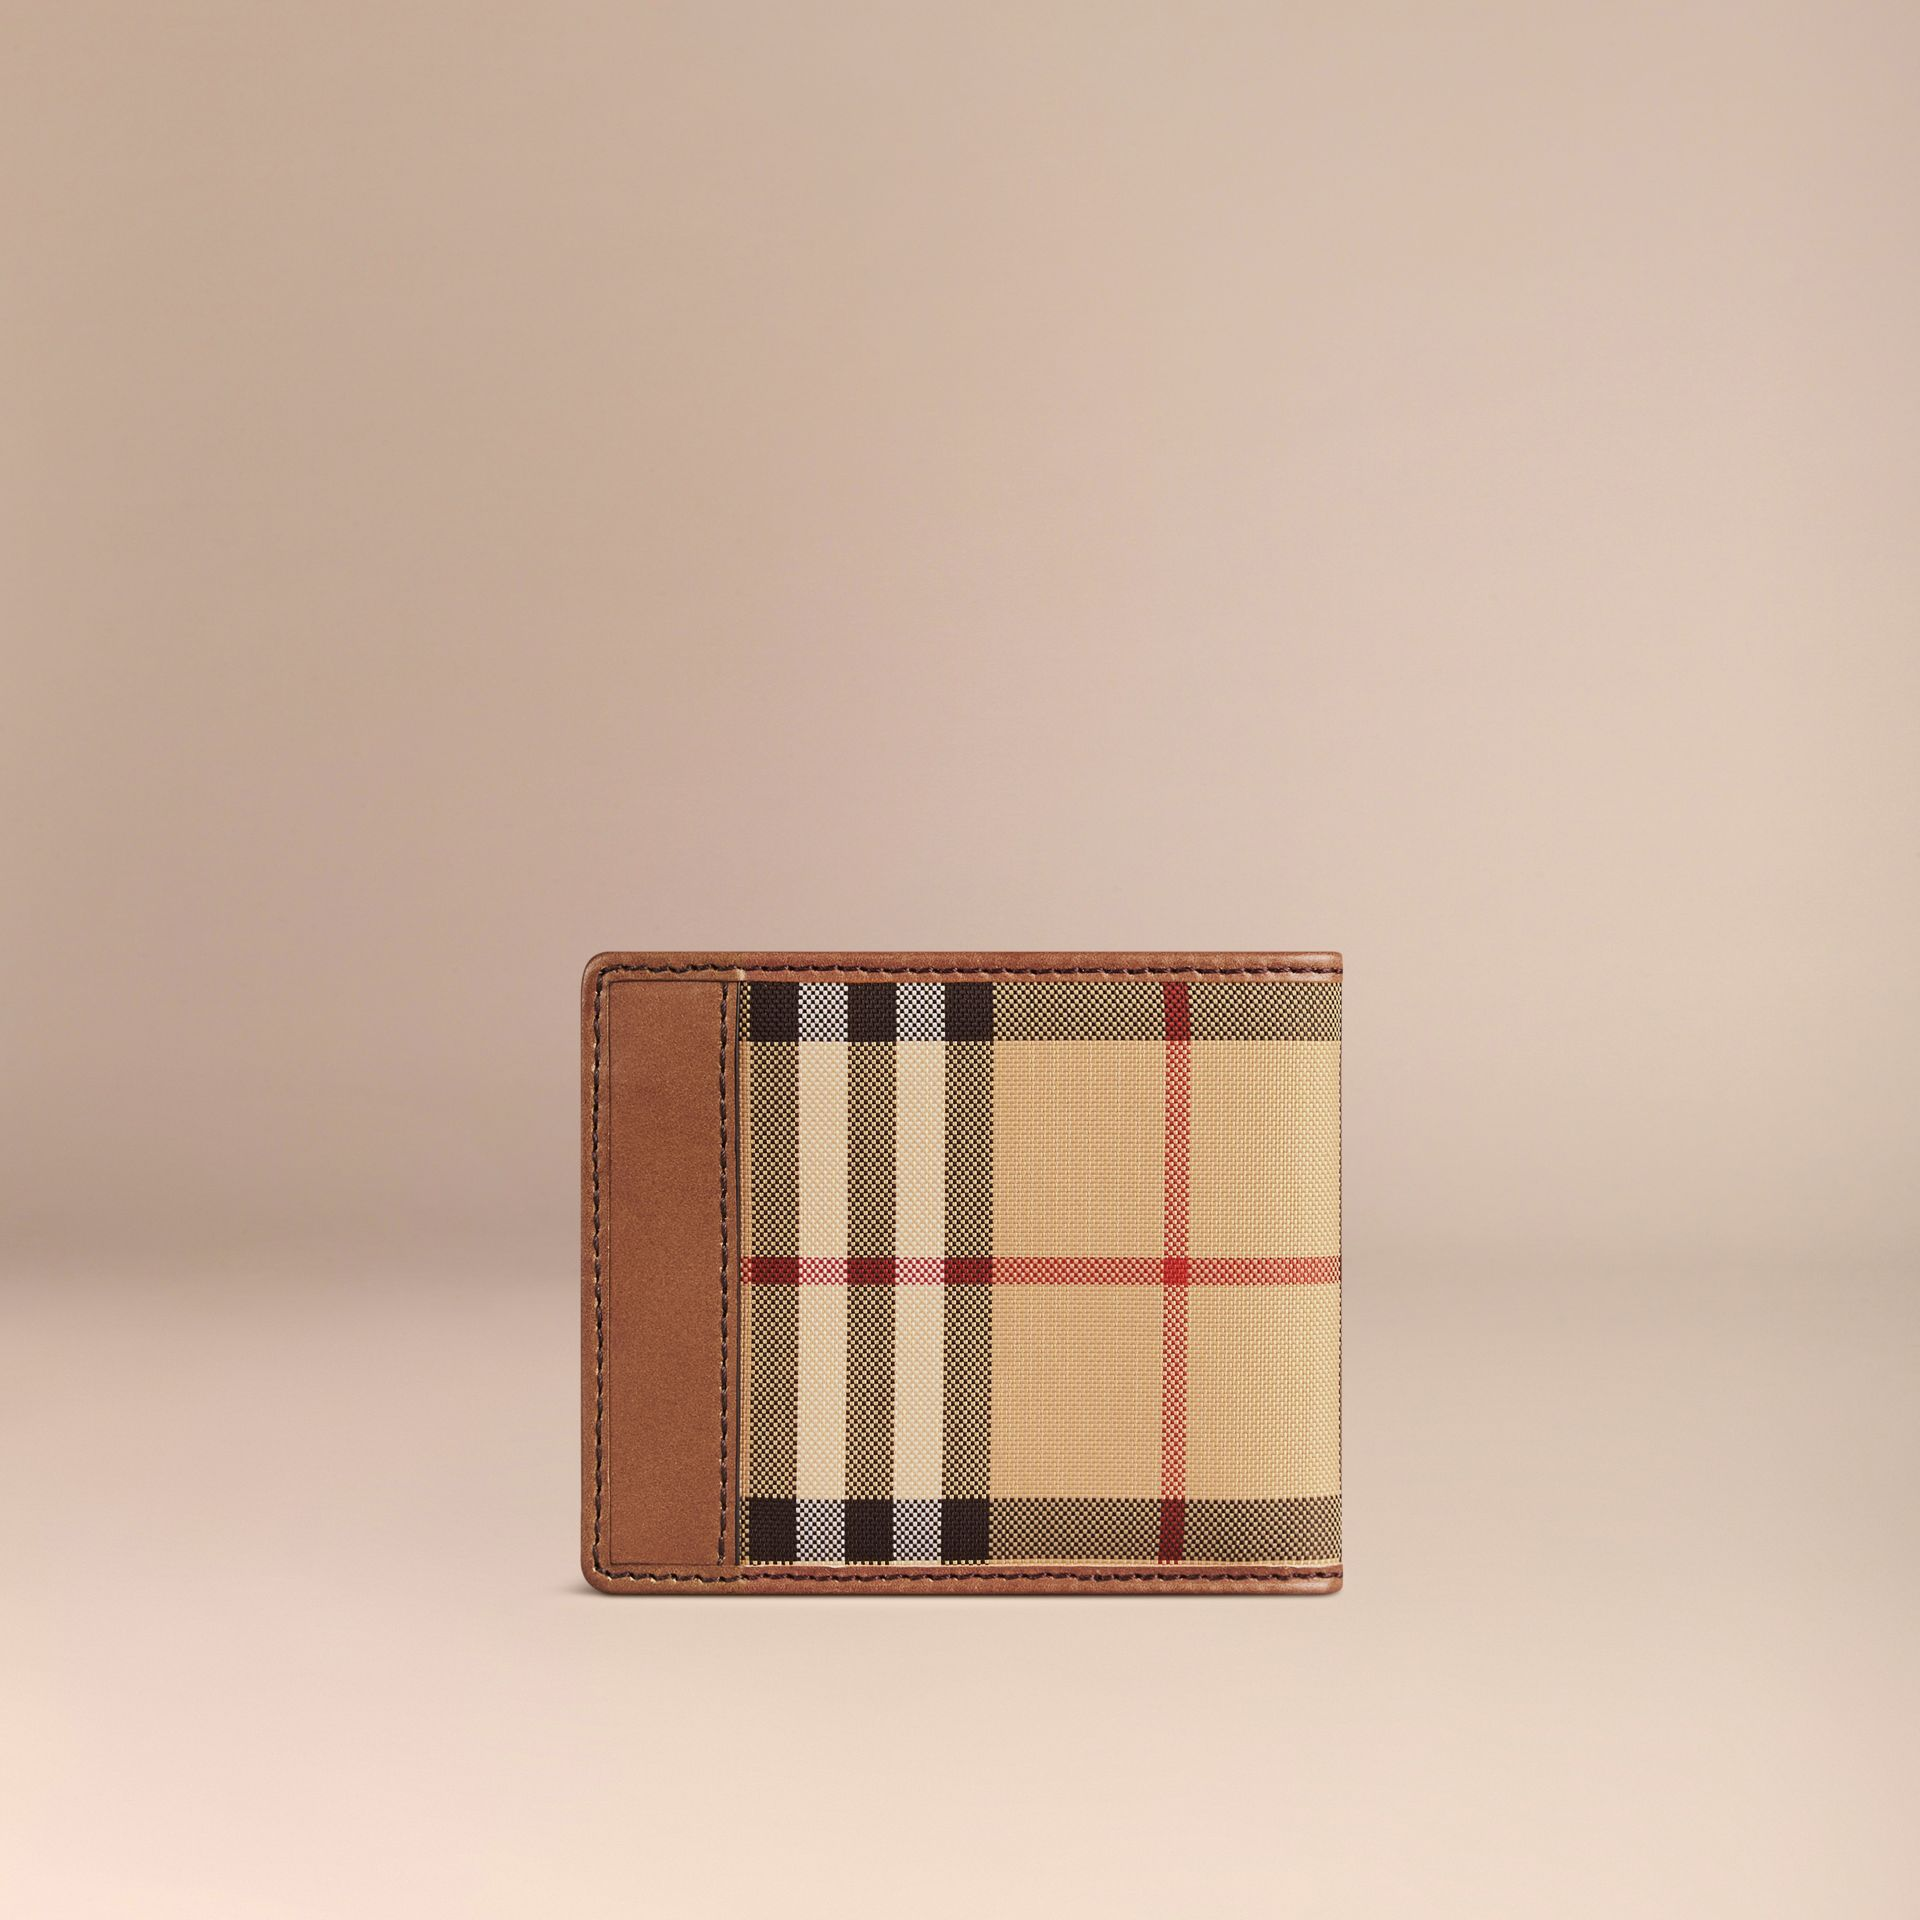 Horseferry Check ID Wallet in Tan - Men | Burberry Canada - gallery image 3